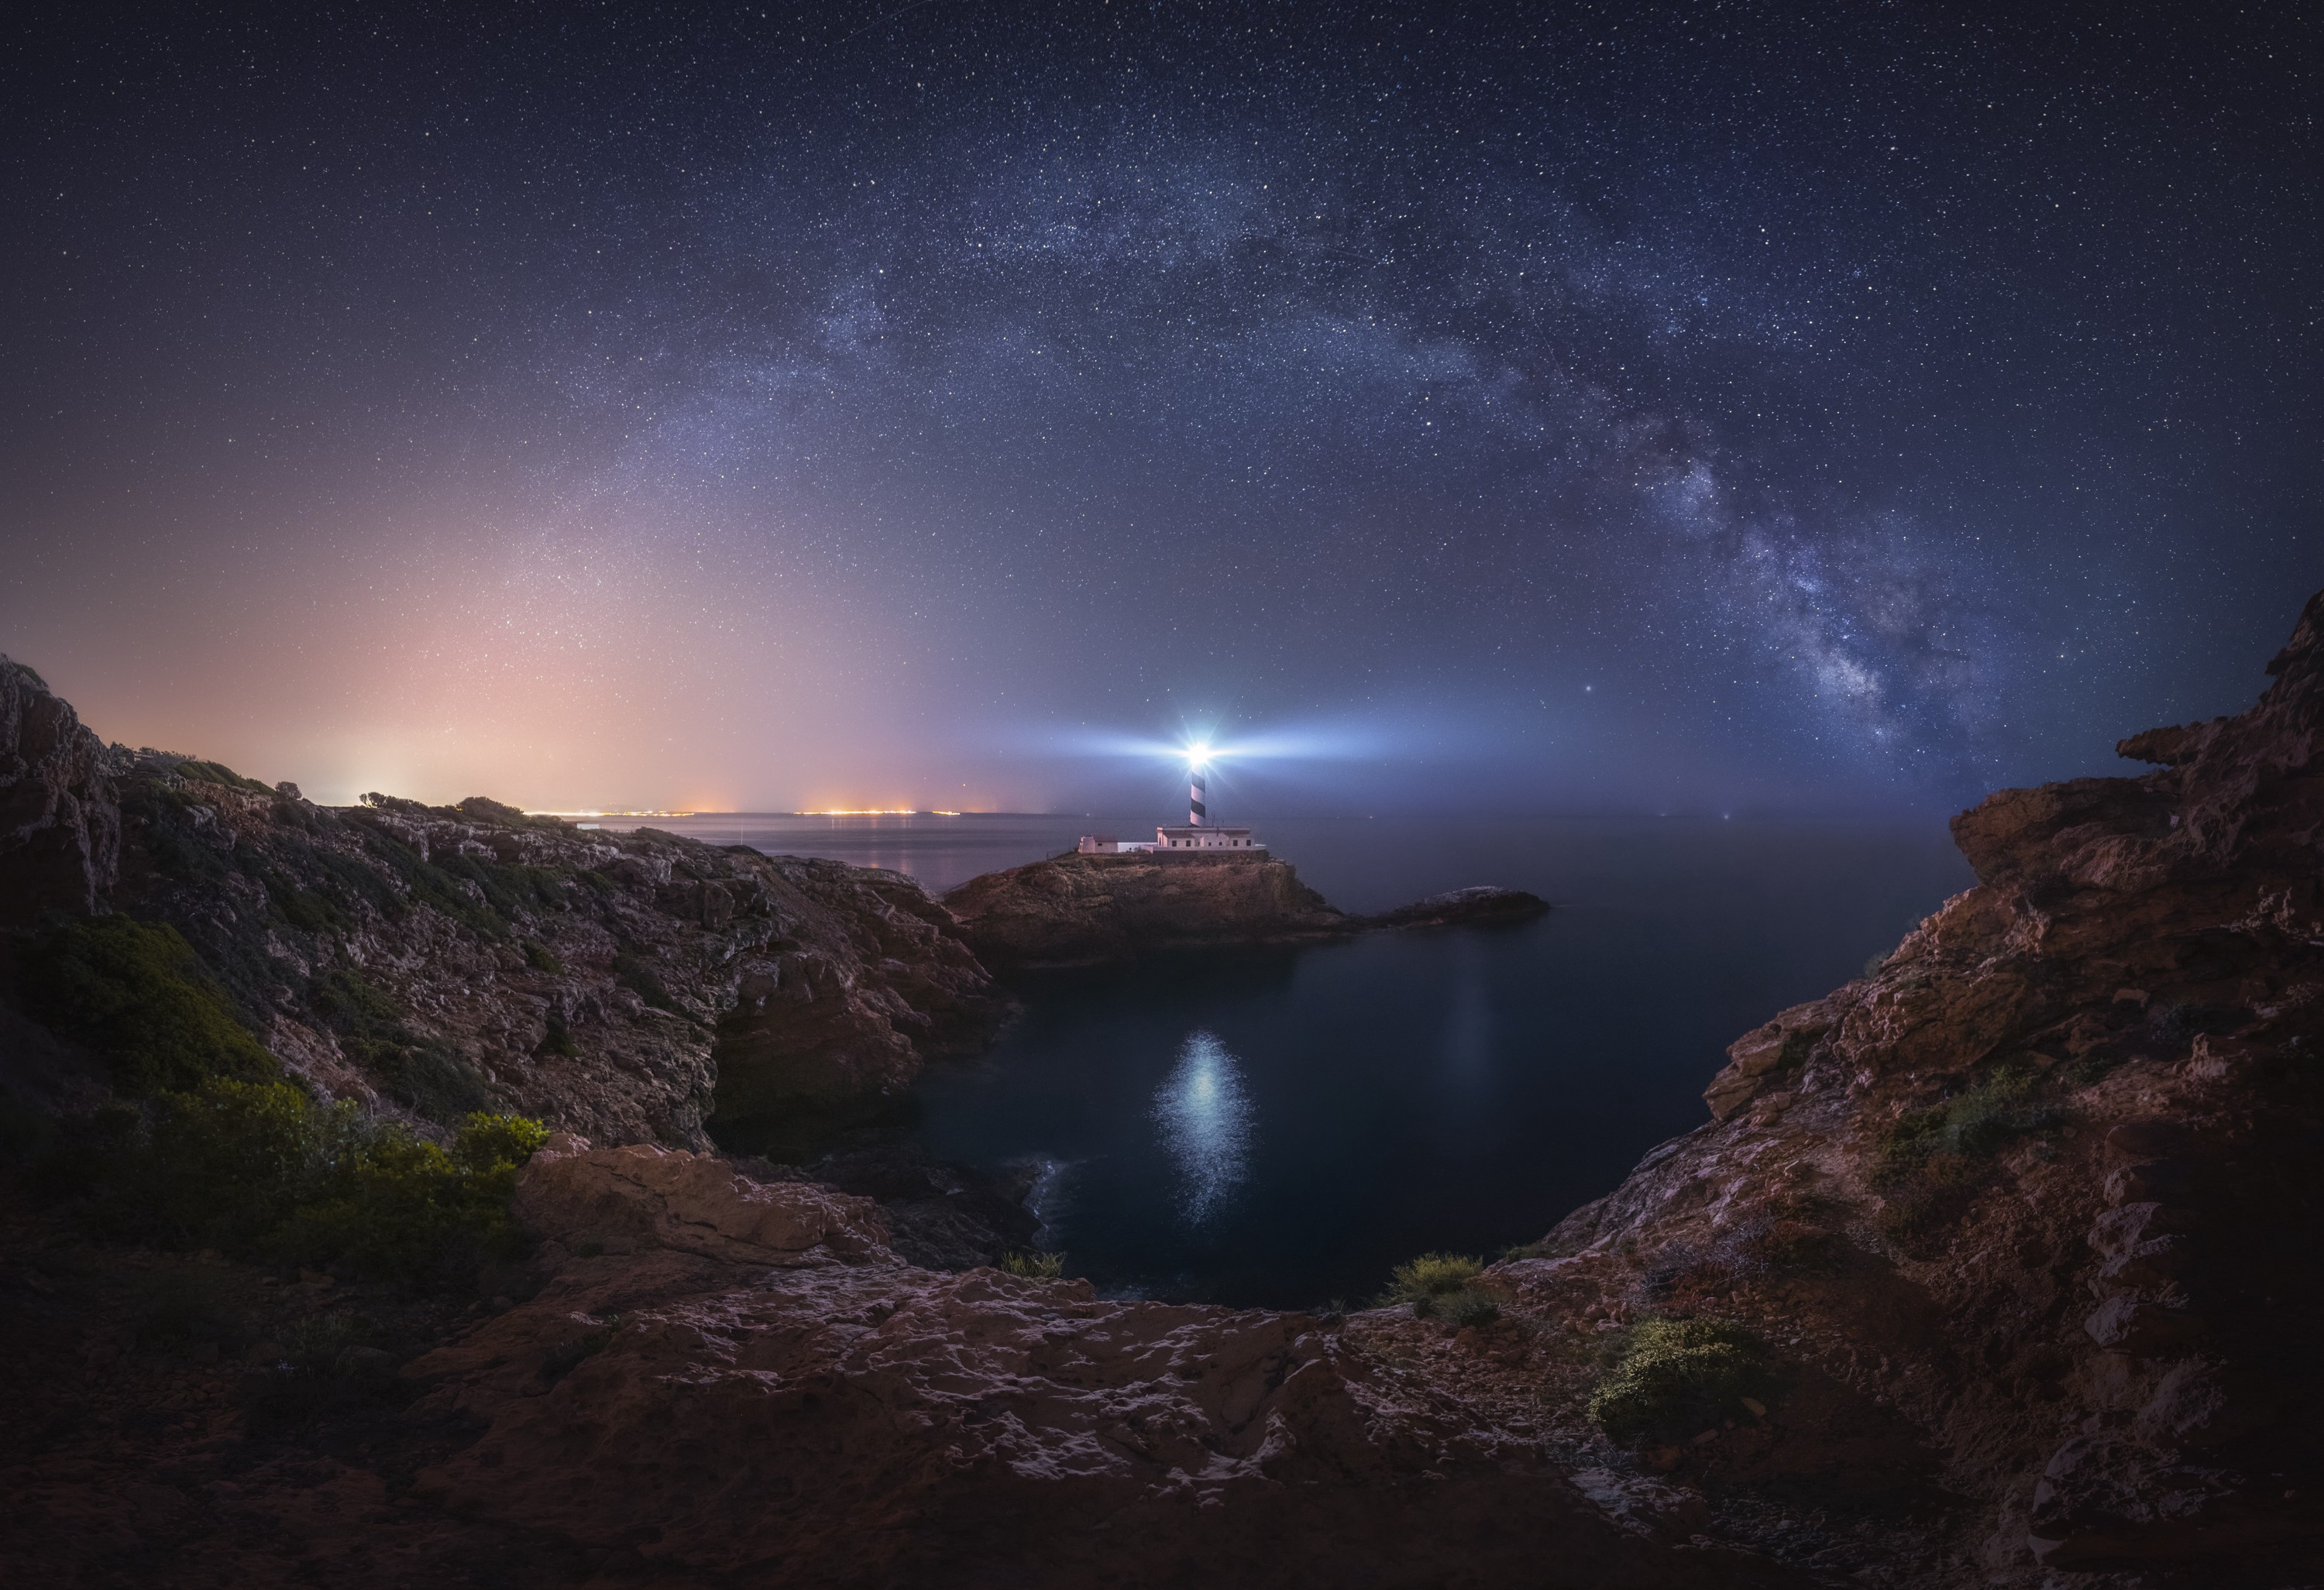 A small striped lighthouse shines a bright light over a rocky, dark ocean cove, with a very starry night sky shown above